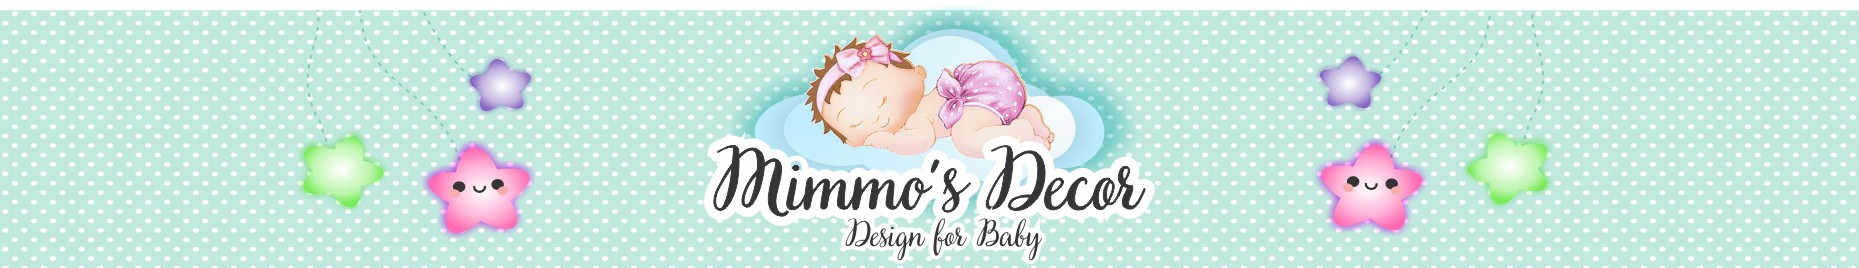 Mimmos Decor Baby